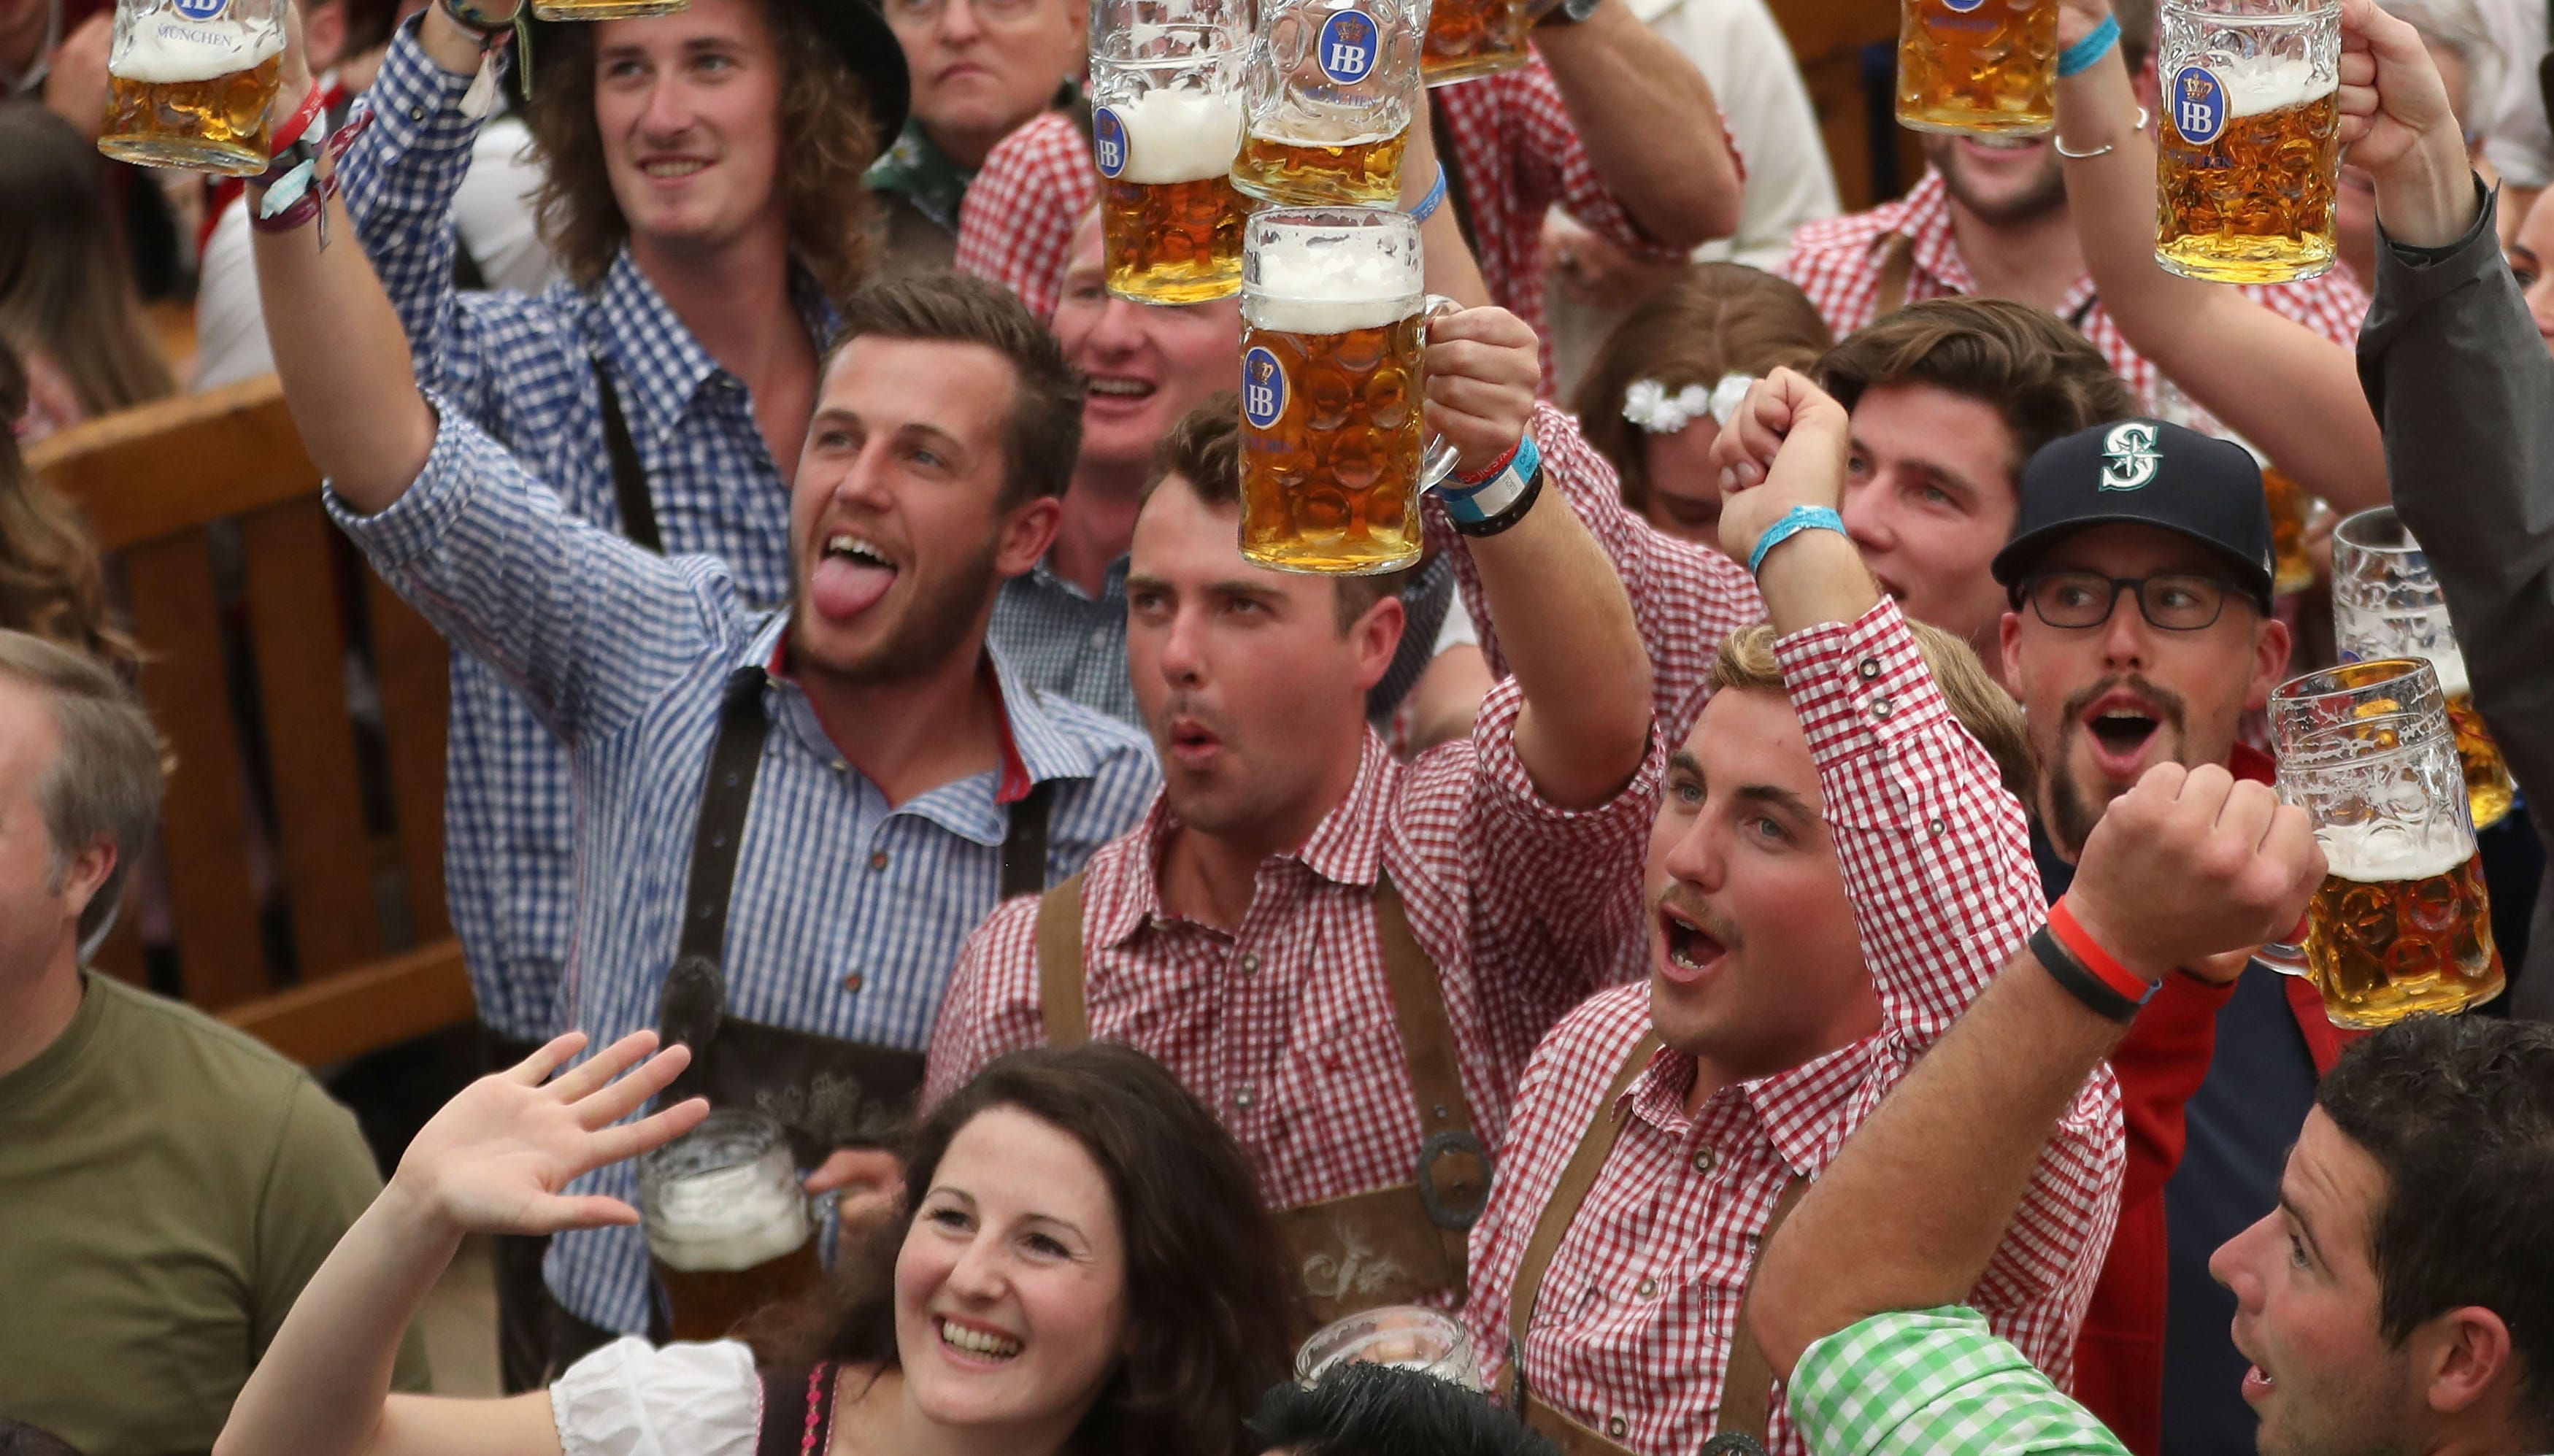 Beer flows as first day of Oktoberfest 2018 opens in Munich